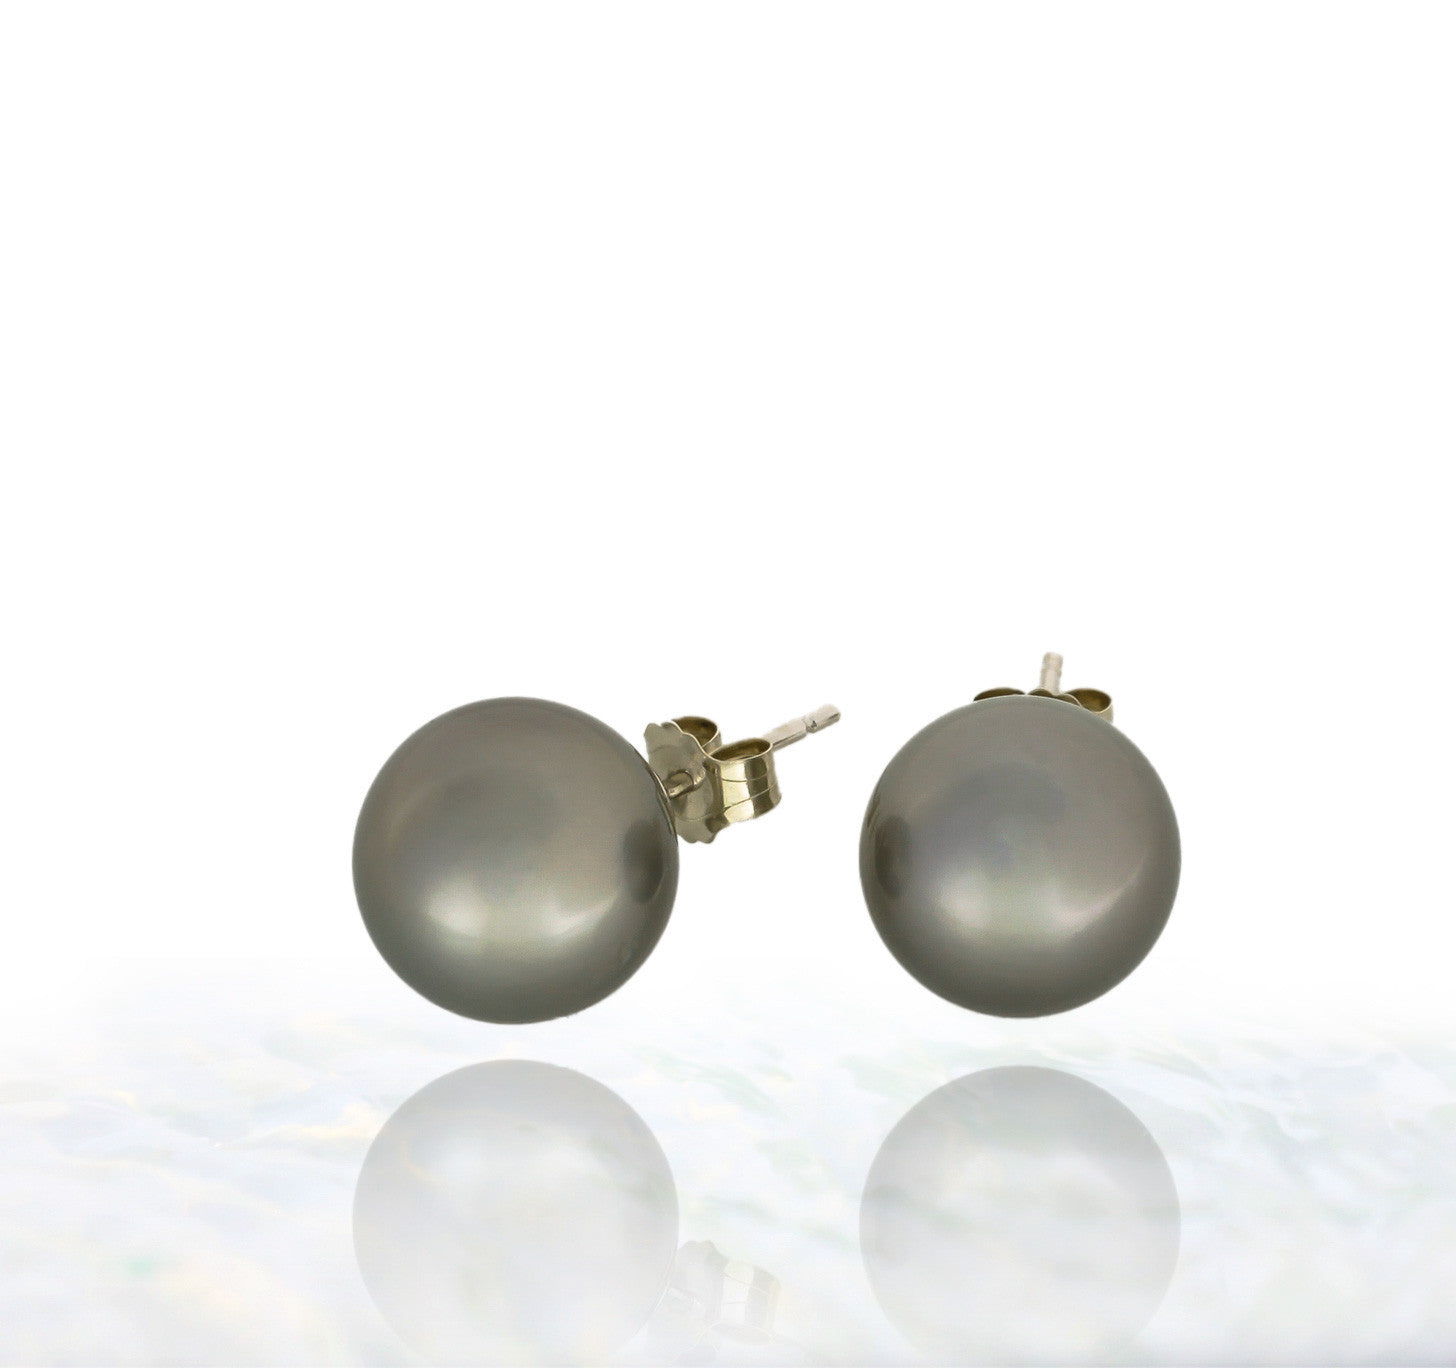 Tahitian pearl earrings - 14k white gold studs - EAWGPE00170